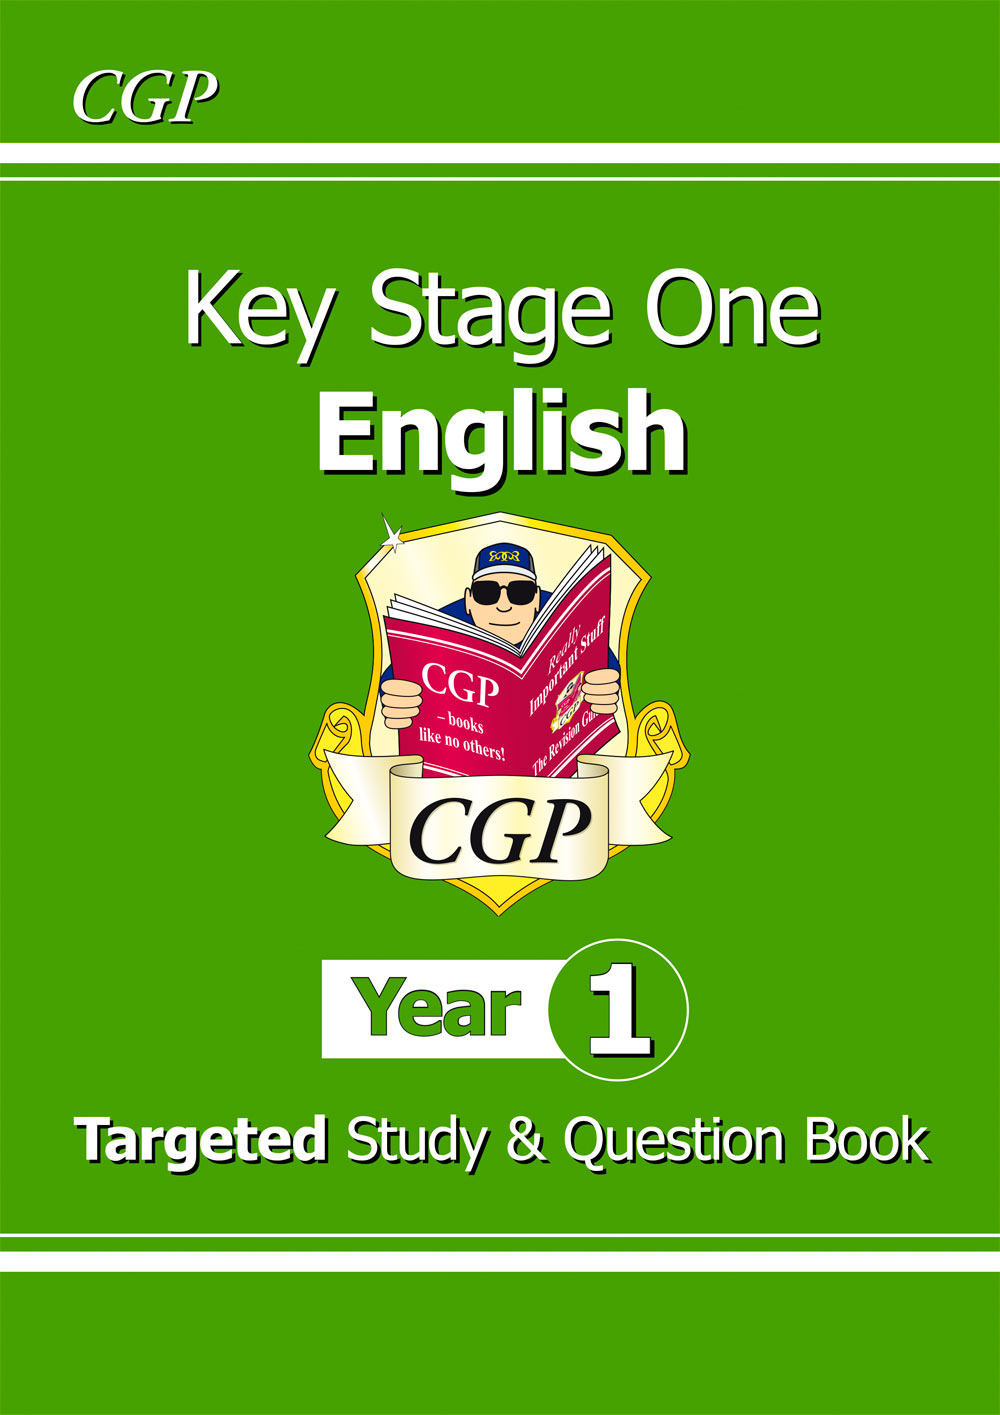 E1TS11 - KS1 English Targeted Study & Question Book - Year 1